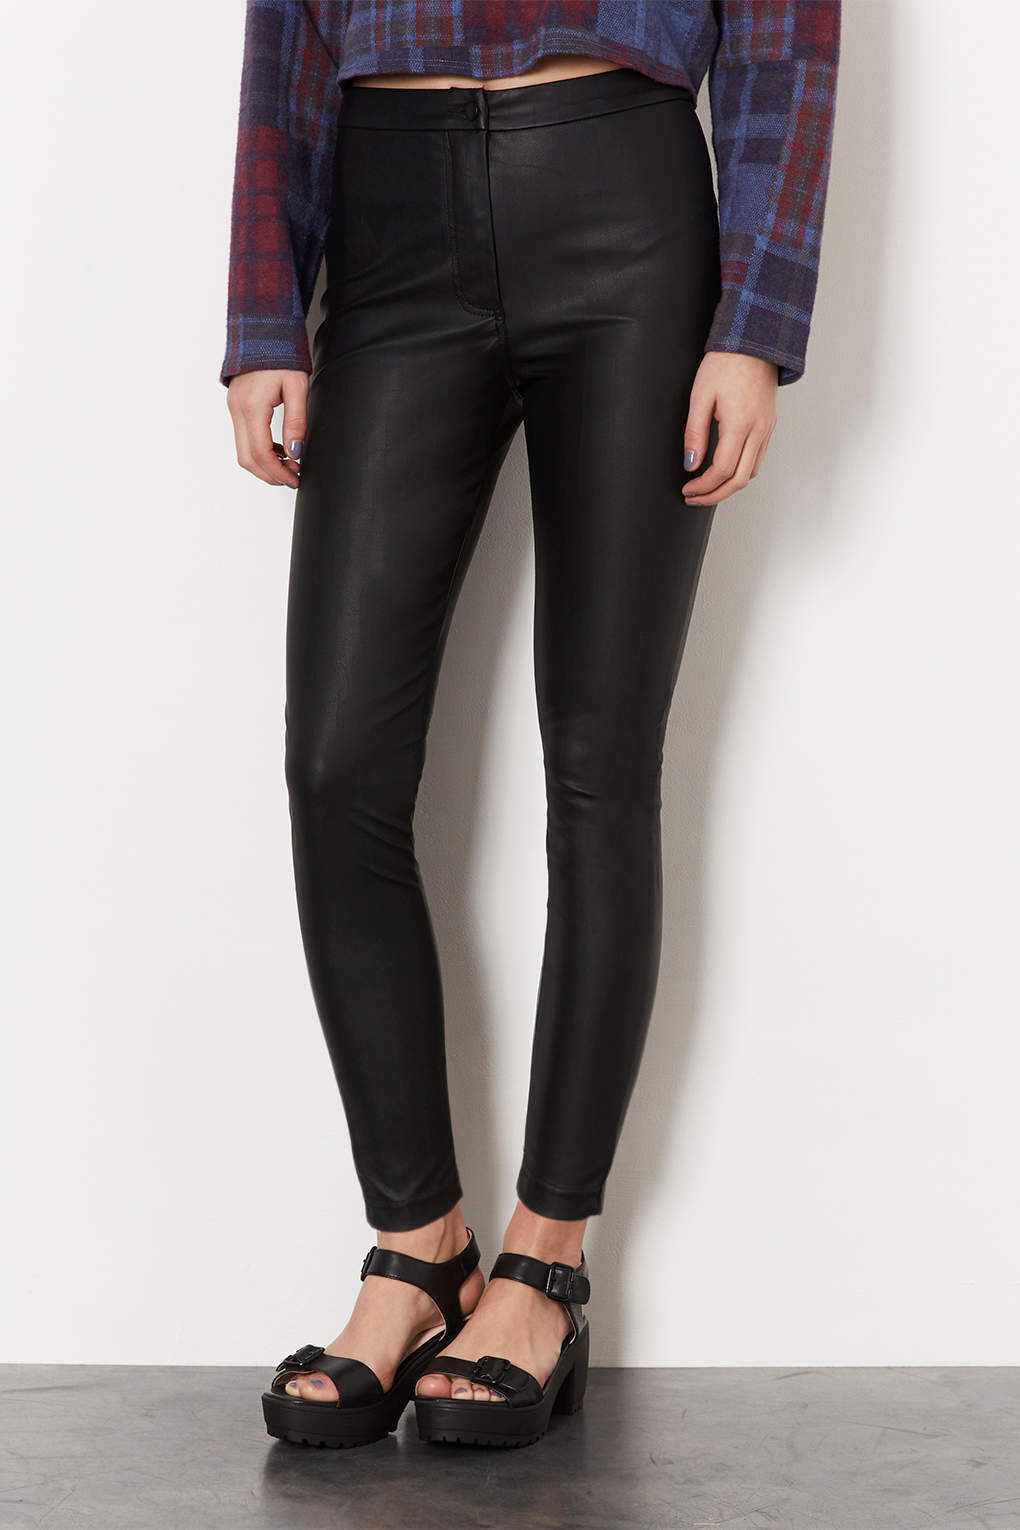 Topshop Petite Leather Look Highwaisted Trousers in Black | Lyst